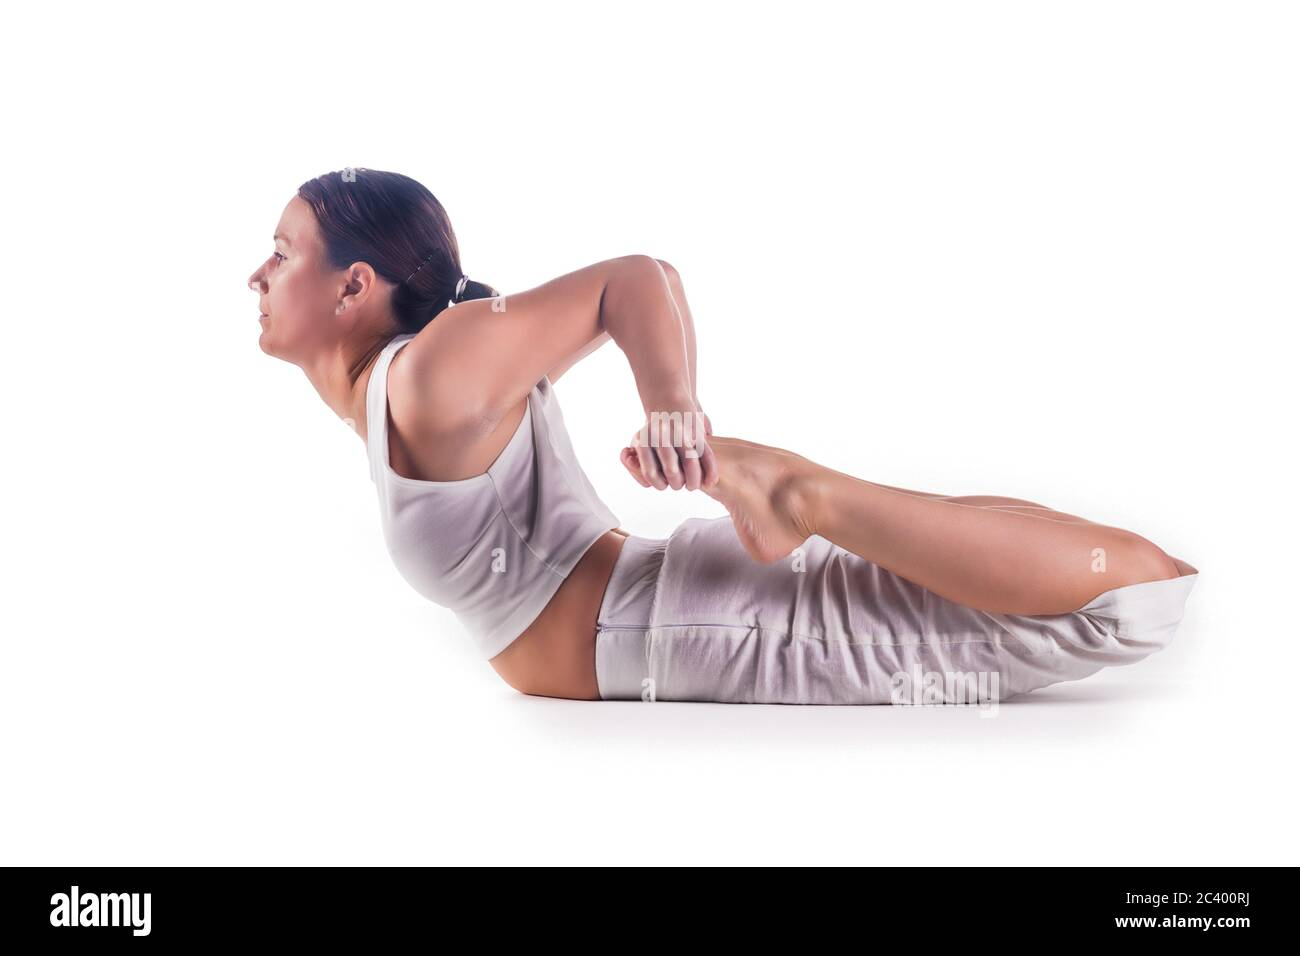 Frog Pose Yoga High Resolution Stock Photography and Images - Alamy